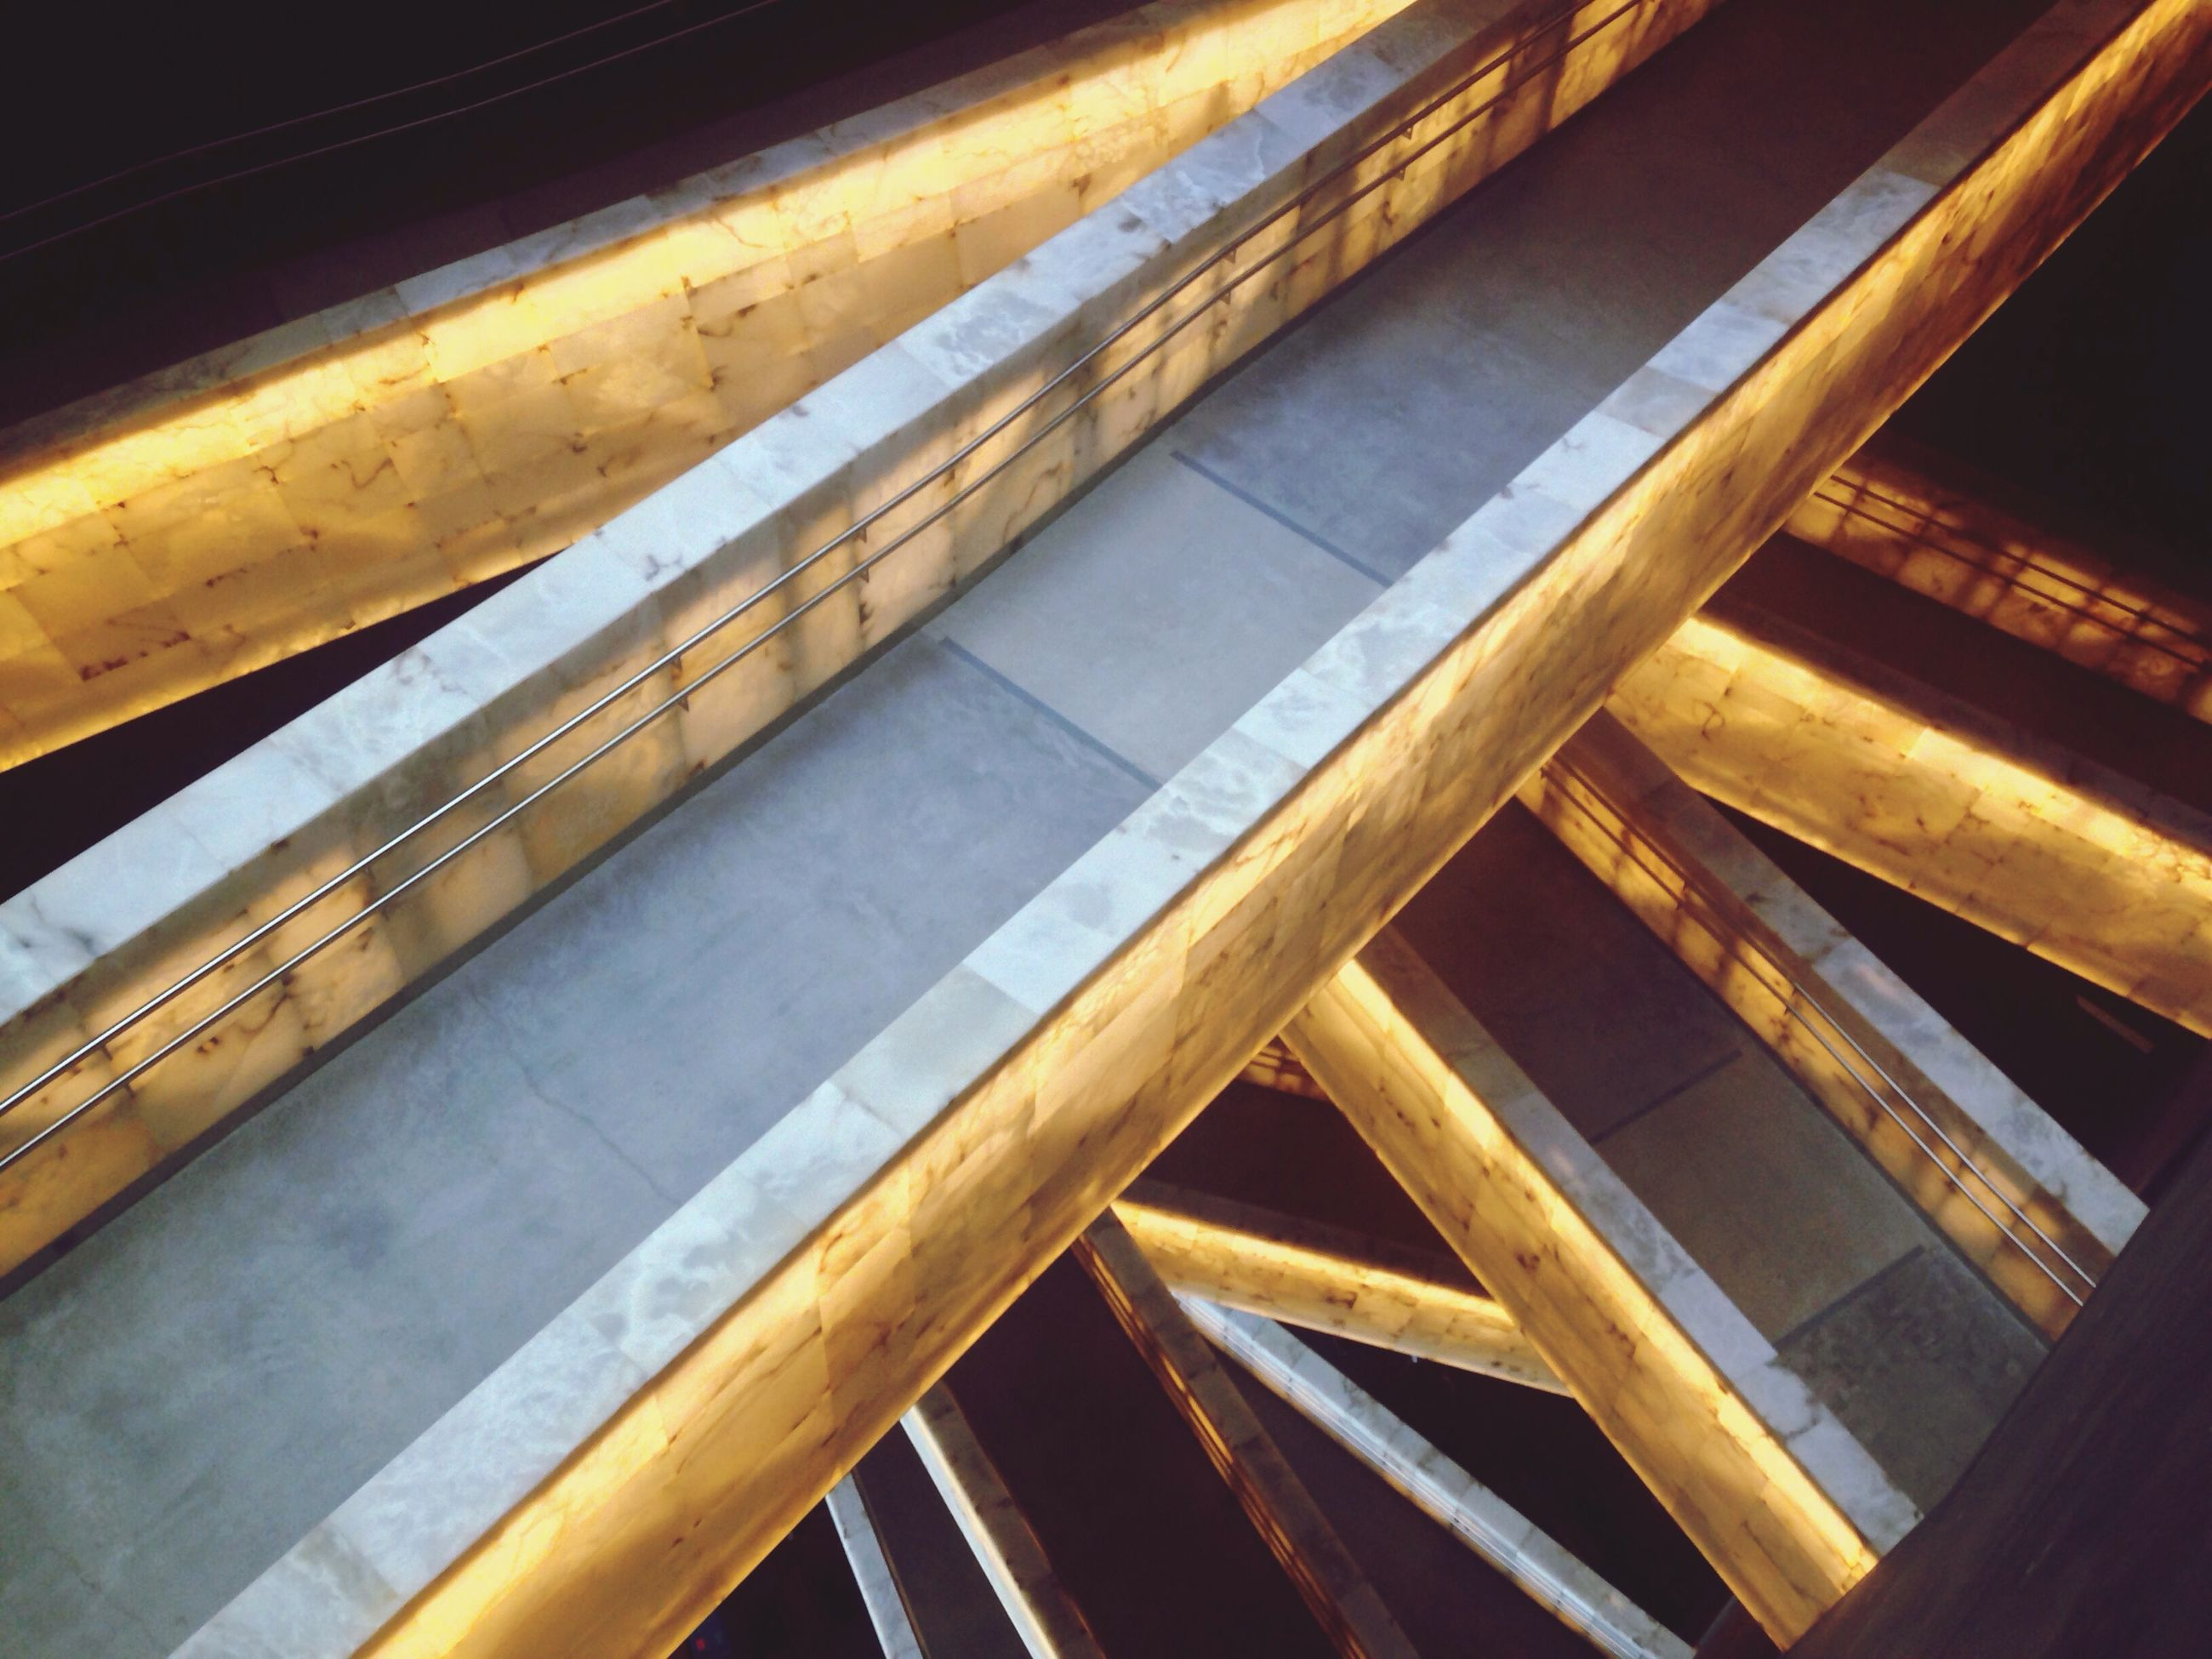 railing, steps, indoors, steps and staircases, staircase, low angle view, built structure, architecture, metal, pattern, night, spiral, high angle view, wood - material, ceiling, no people, spiral staircase, illuminated, escalator, close-up